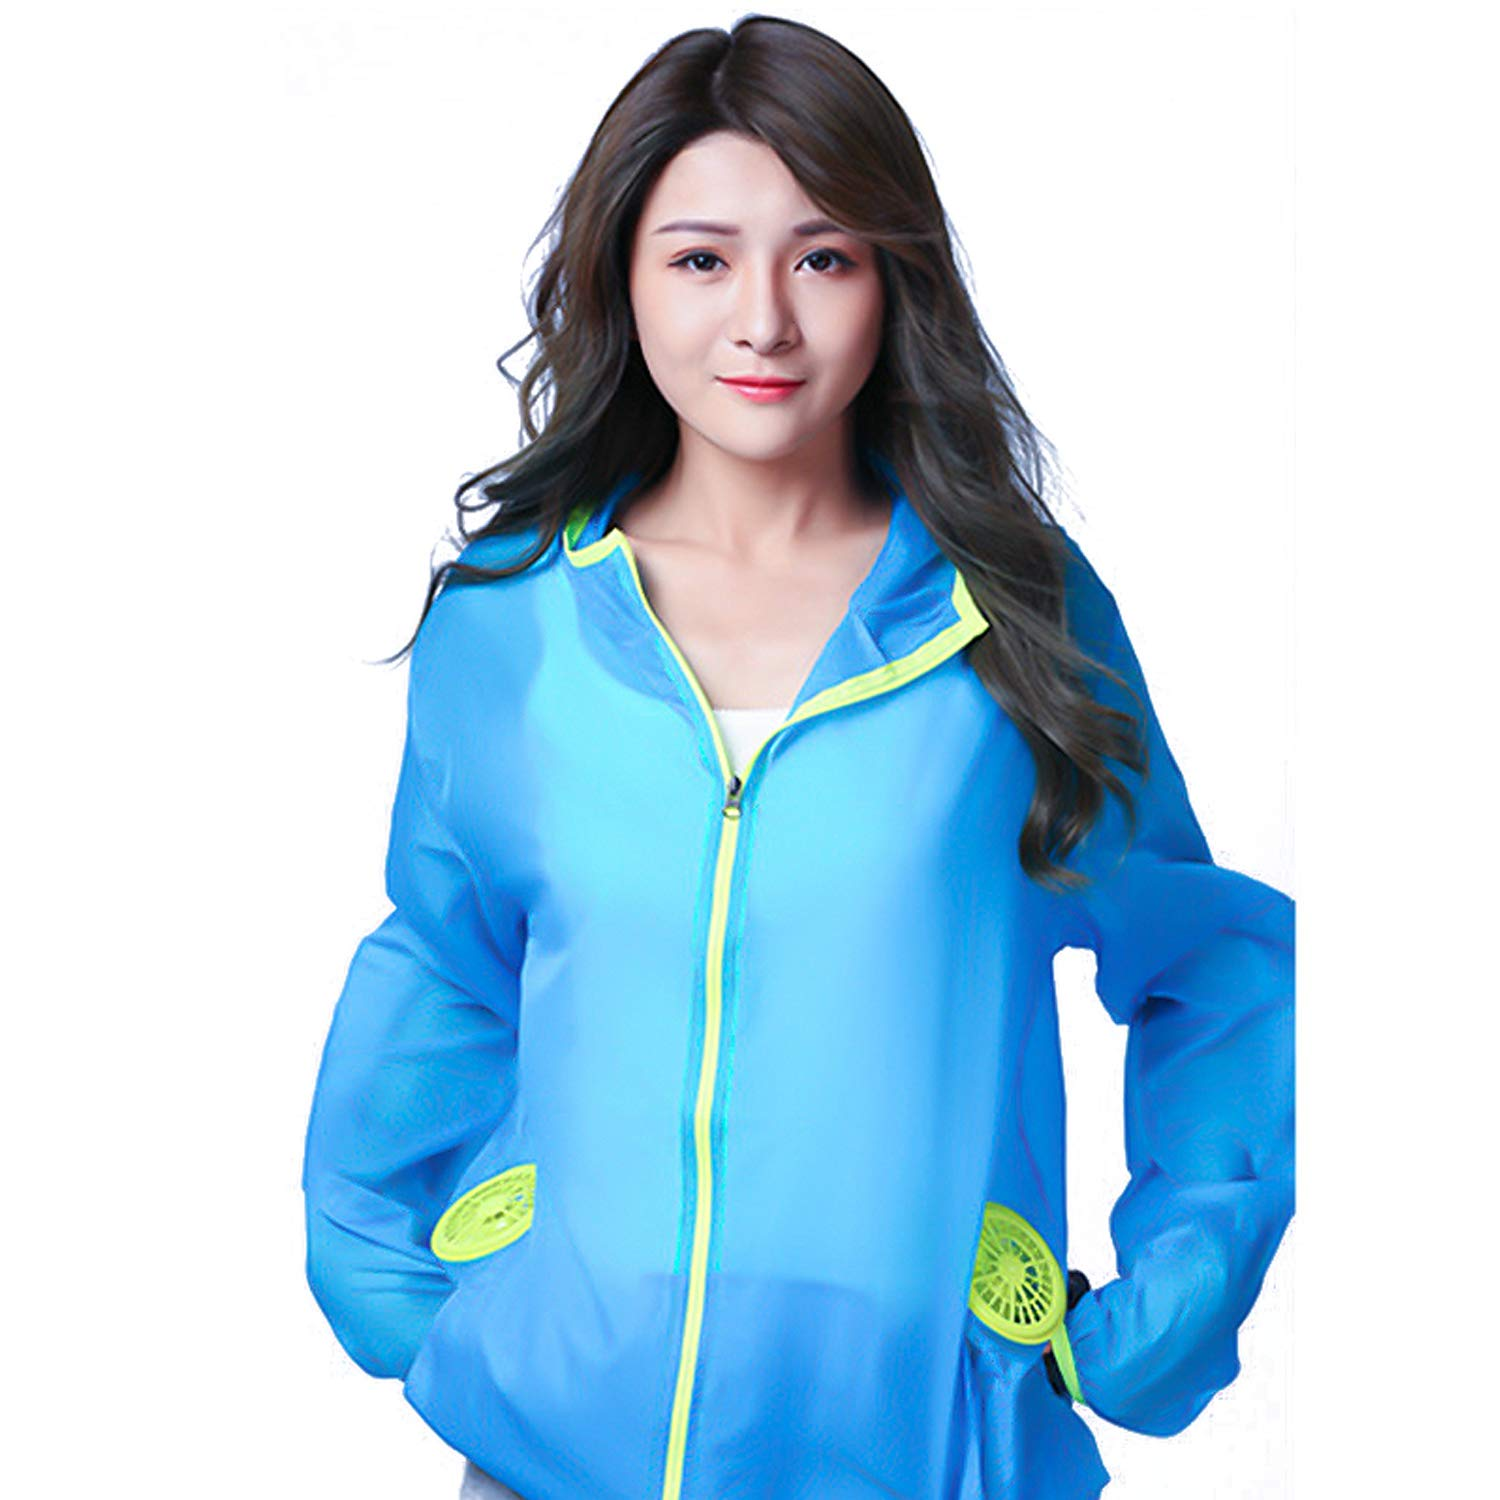 Bearhoho Summer Air Conditioning Suit USB Fan Jacket Quick-Drying Sunscreen Clothes for Outdoor Activities (Blue, S)